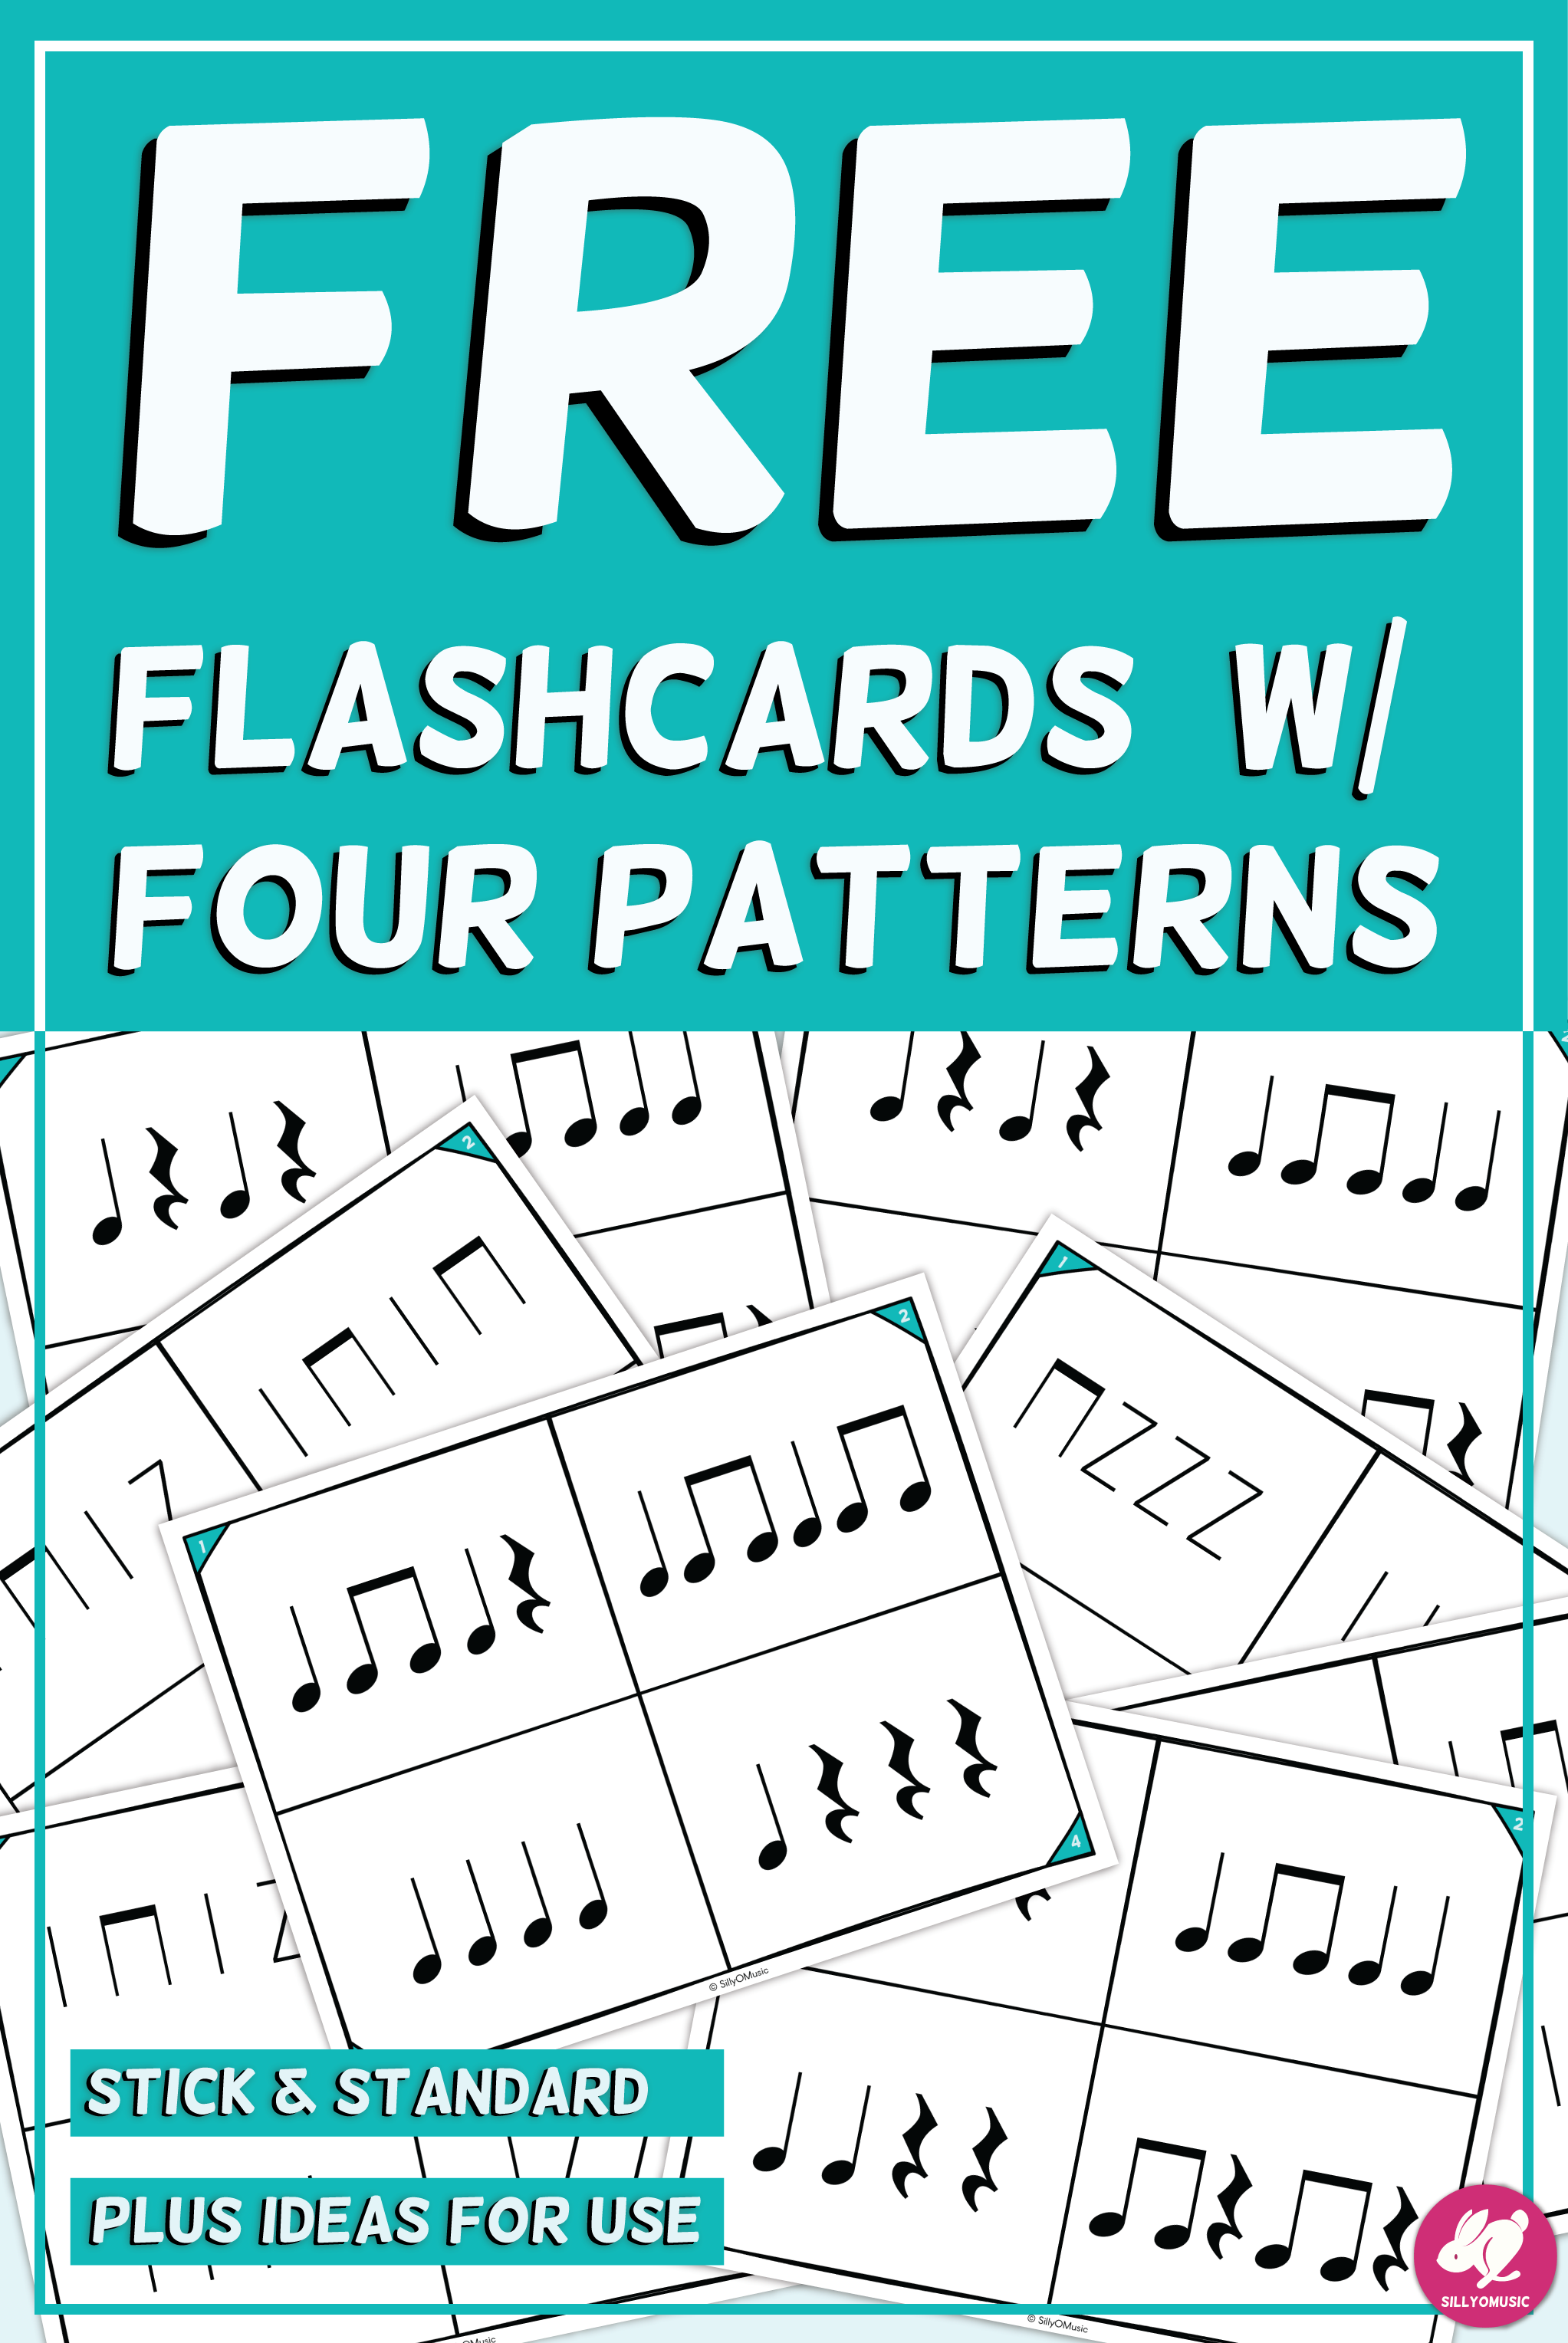 Quarter Note Amp Rest Amp 8th Notes Flashcards With 4 Corners